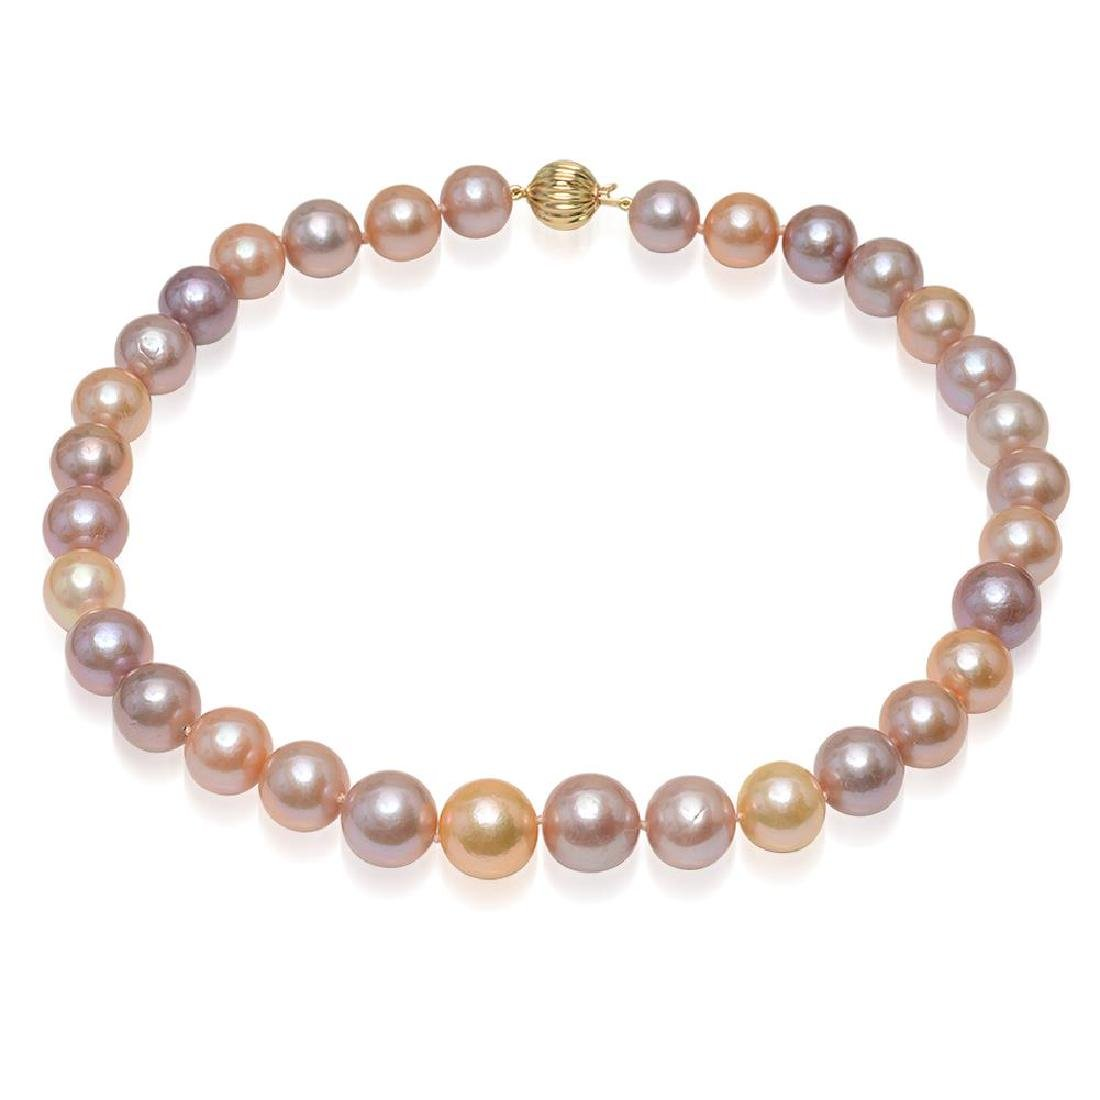 12-15mm Natural South Sea Pearl Necklace - 3